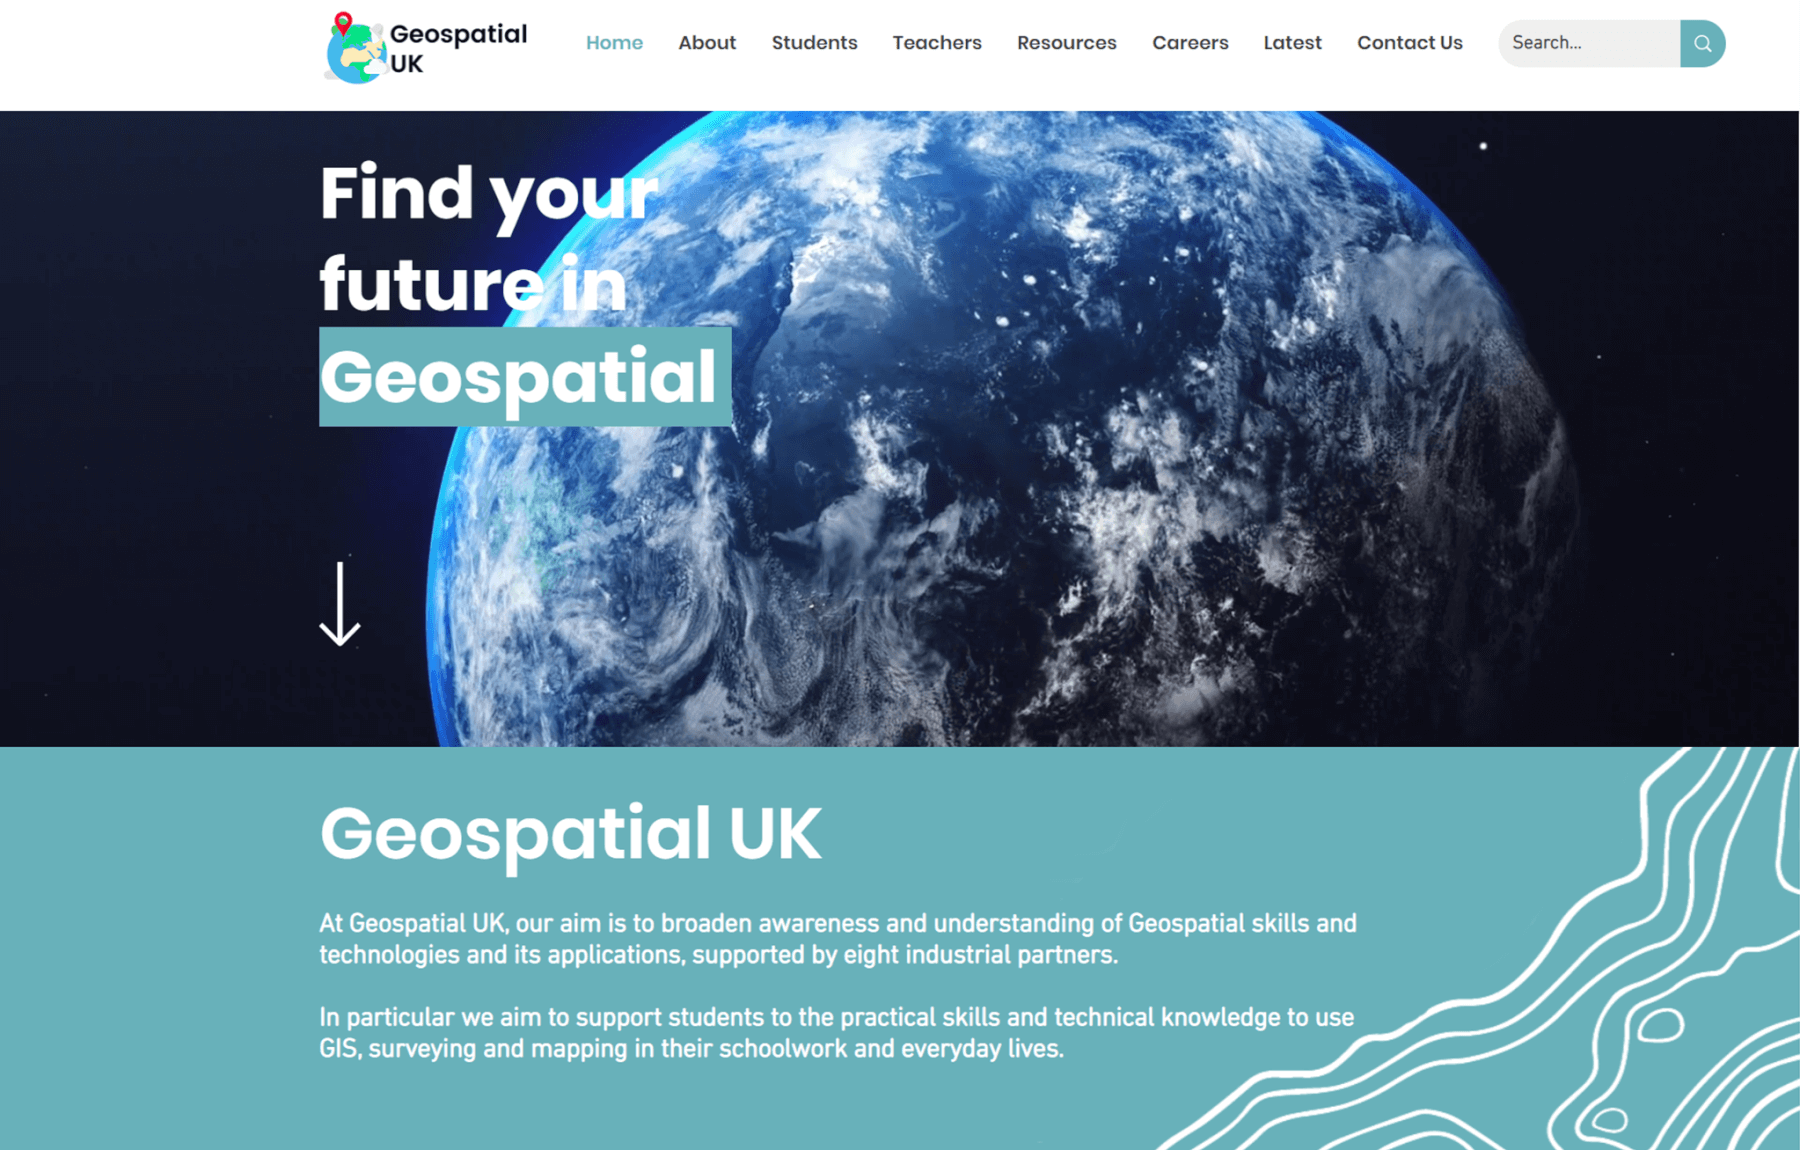 Inspiring the Next Generation of Geospatial Experts